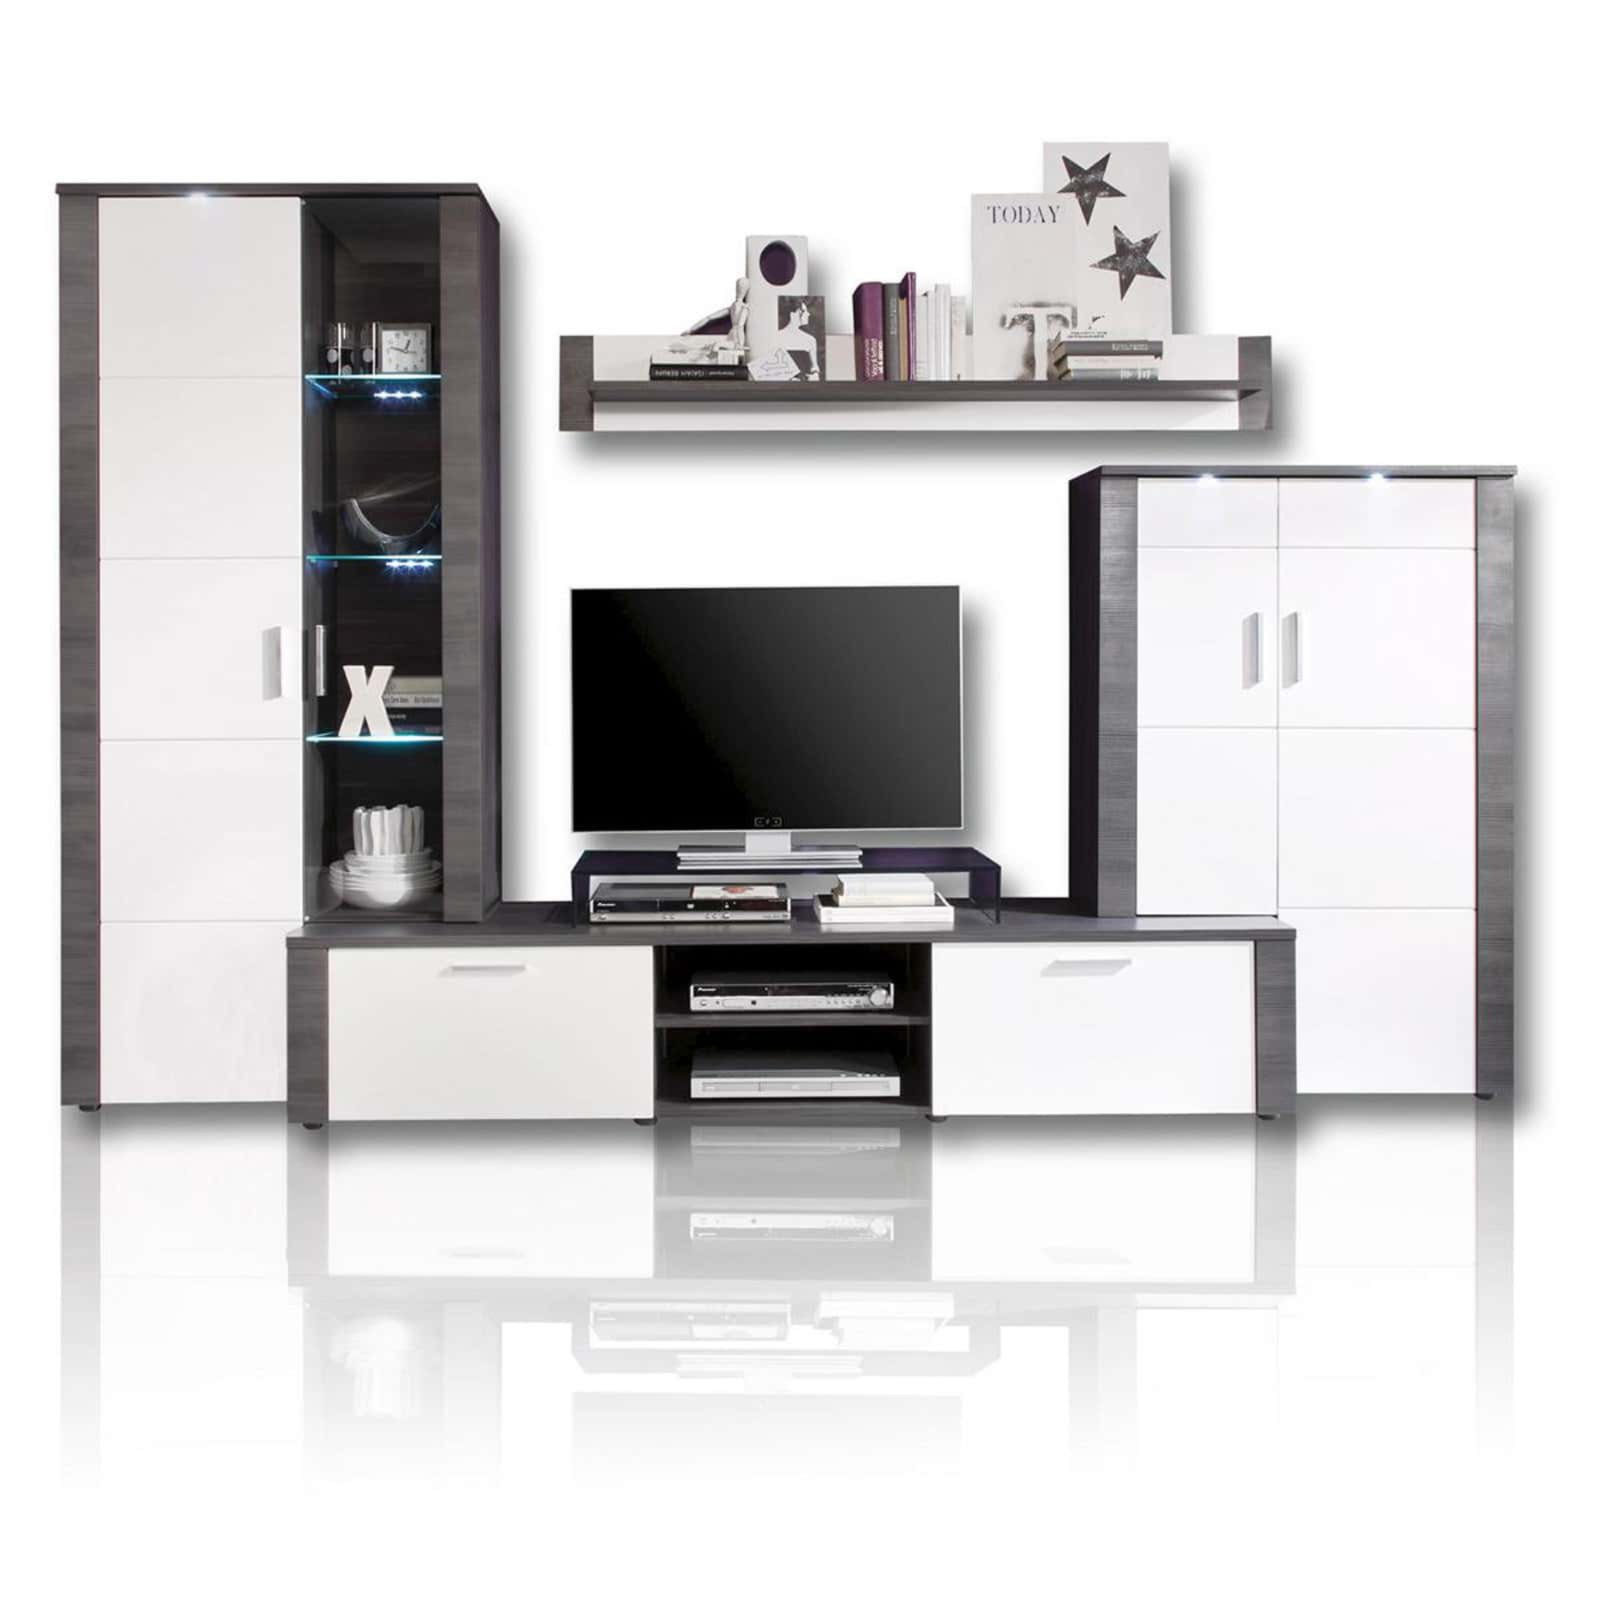 wohnwand xpress esche grau wei beleuchtung. Black Bedroom Furniture Sets. Home Design Ideas